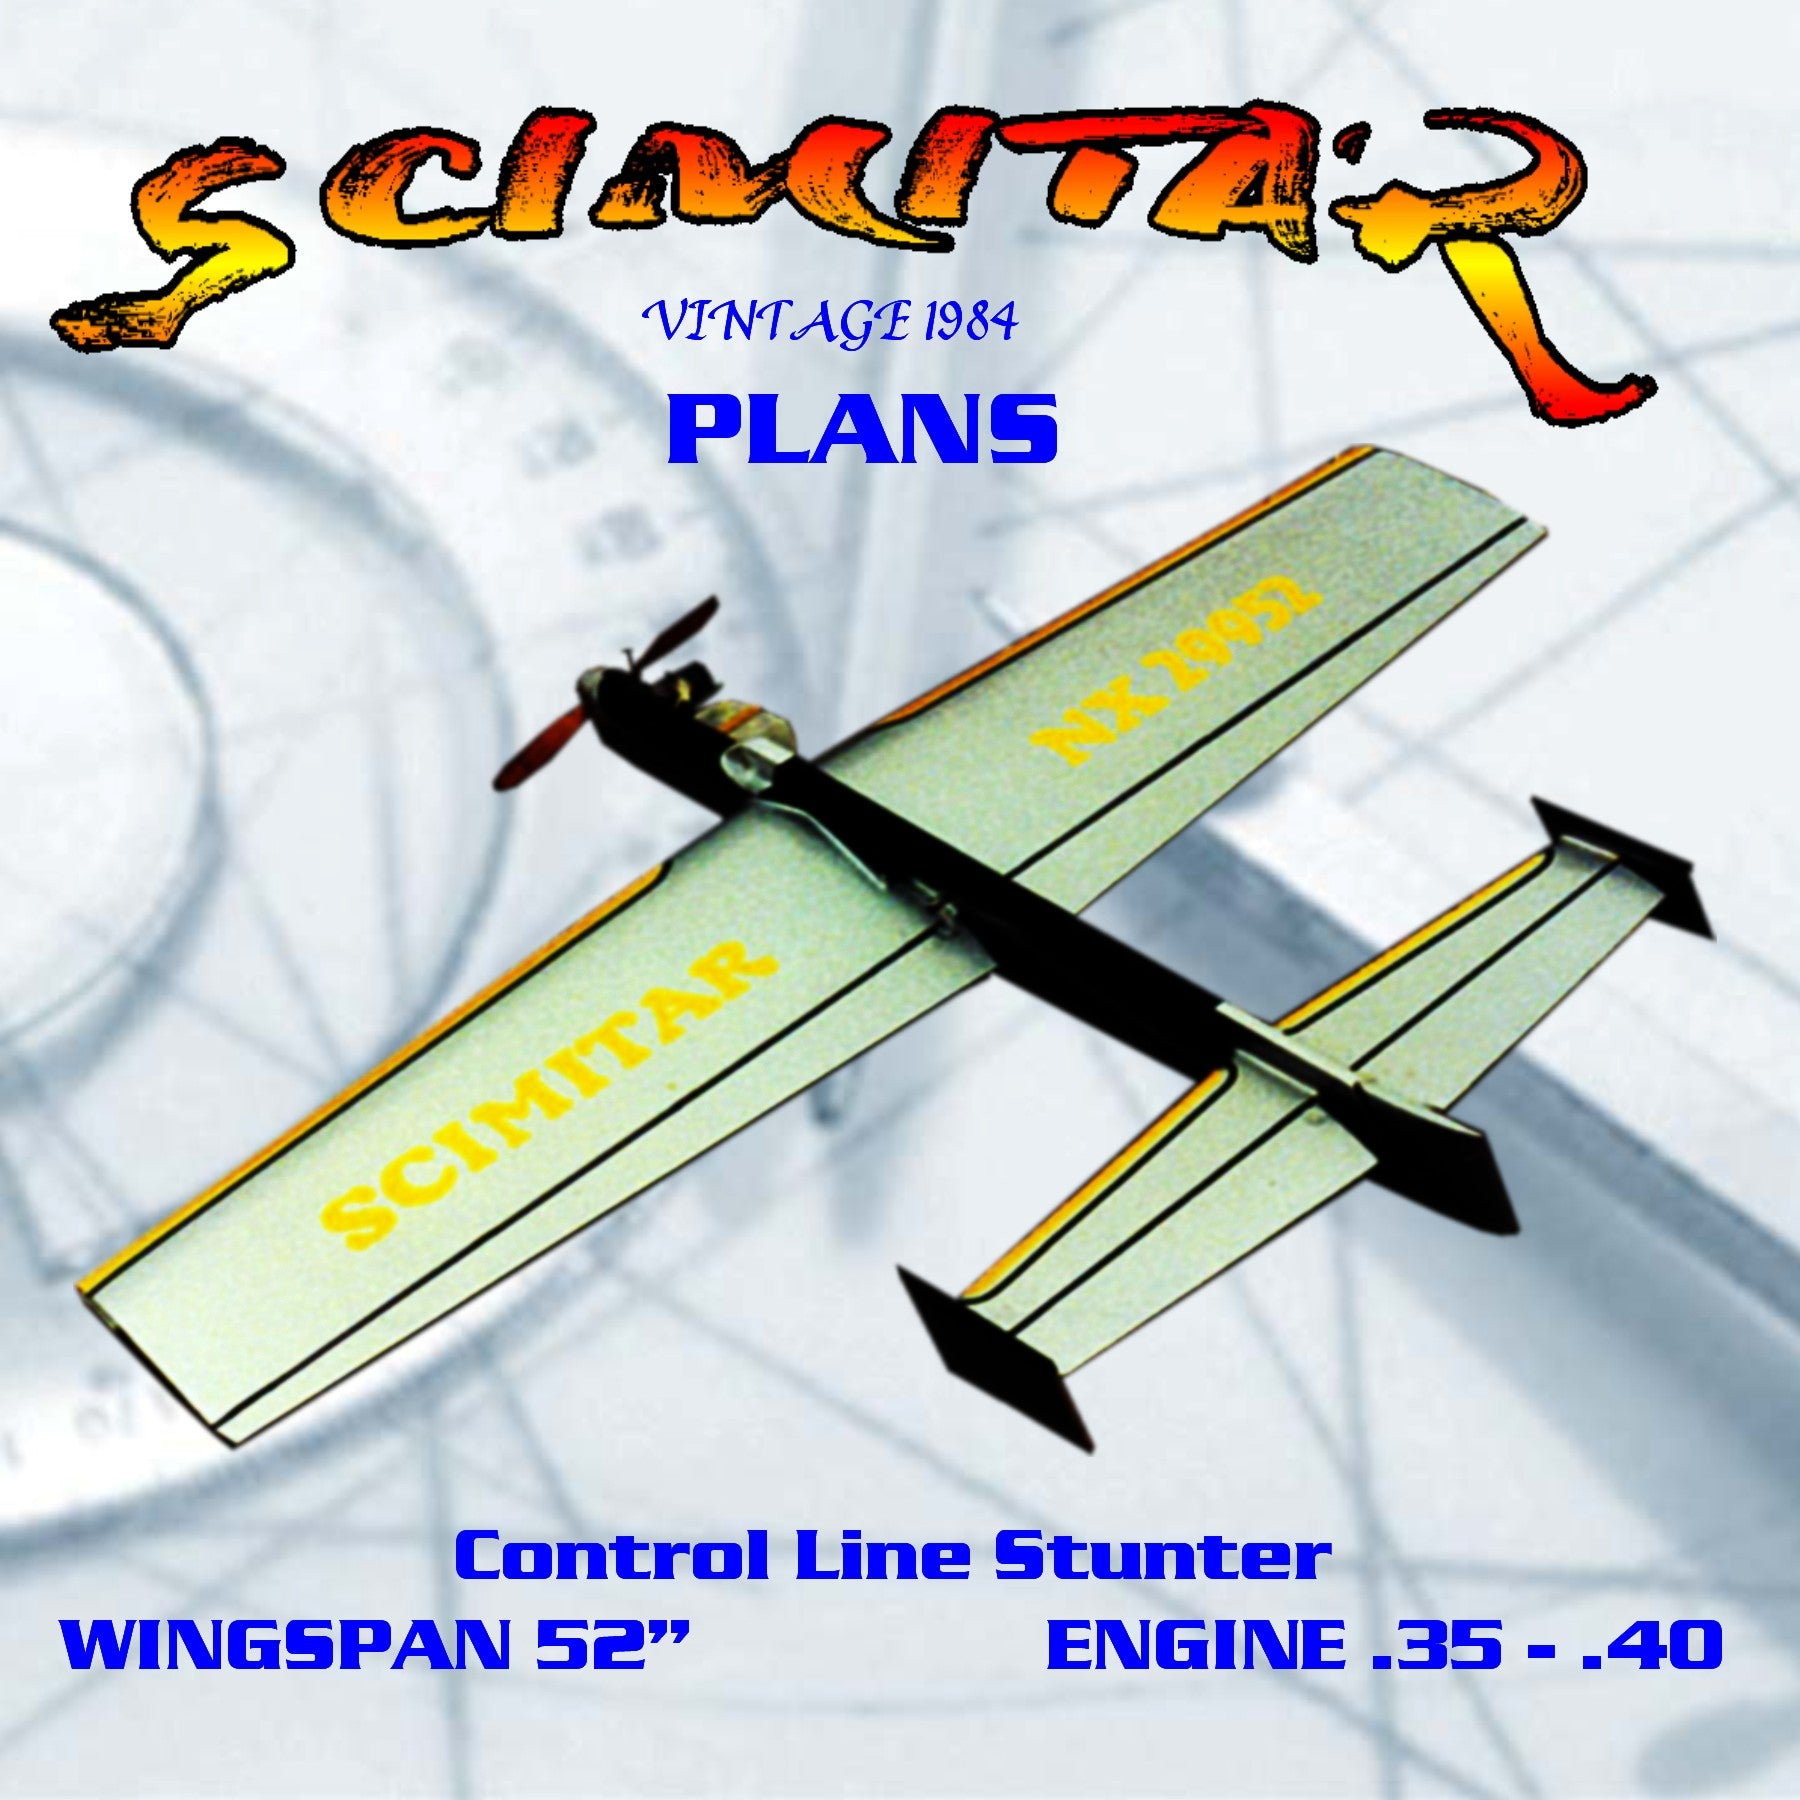 Full size printed plan Vintage 1984 Control Line Stunter  .35 - .40 SCIMITAR   constructed for easy repair in the event of damage.